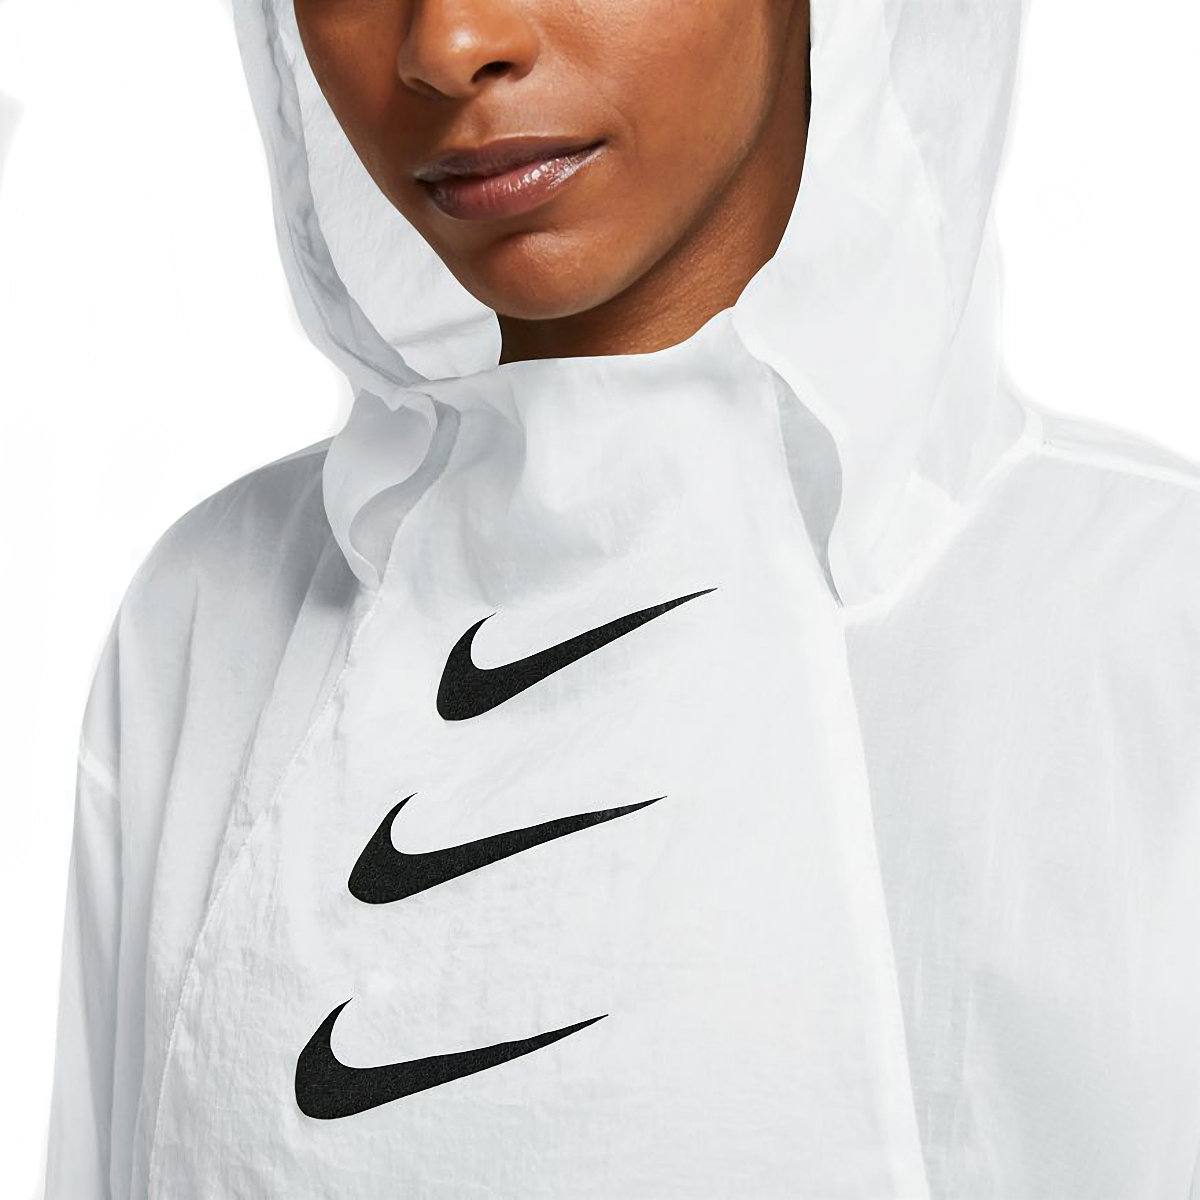 Women's Nike Run Division Package Running Jacket - Color: White/Black - Size: XS, White/Black, large, image 3